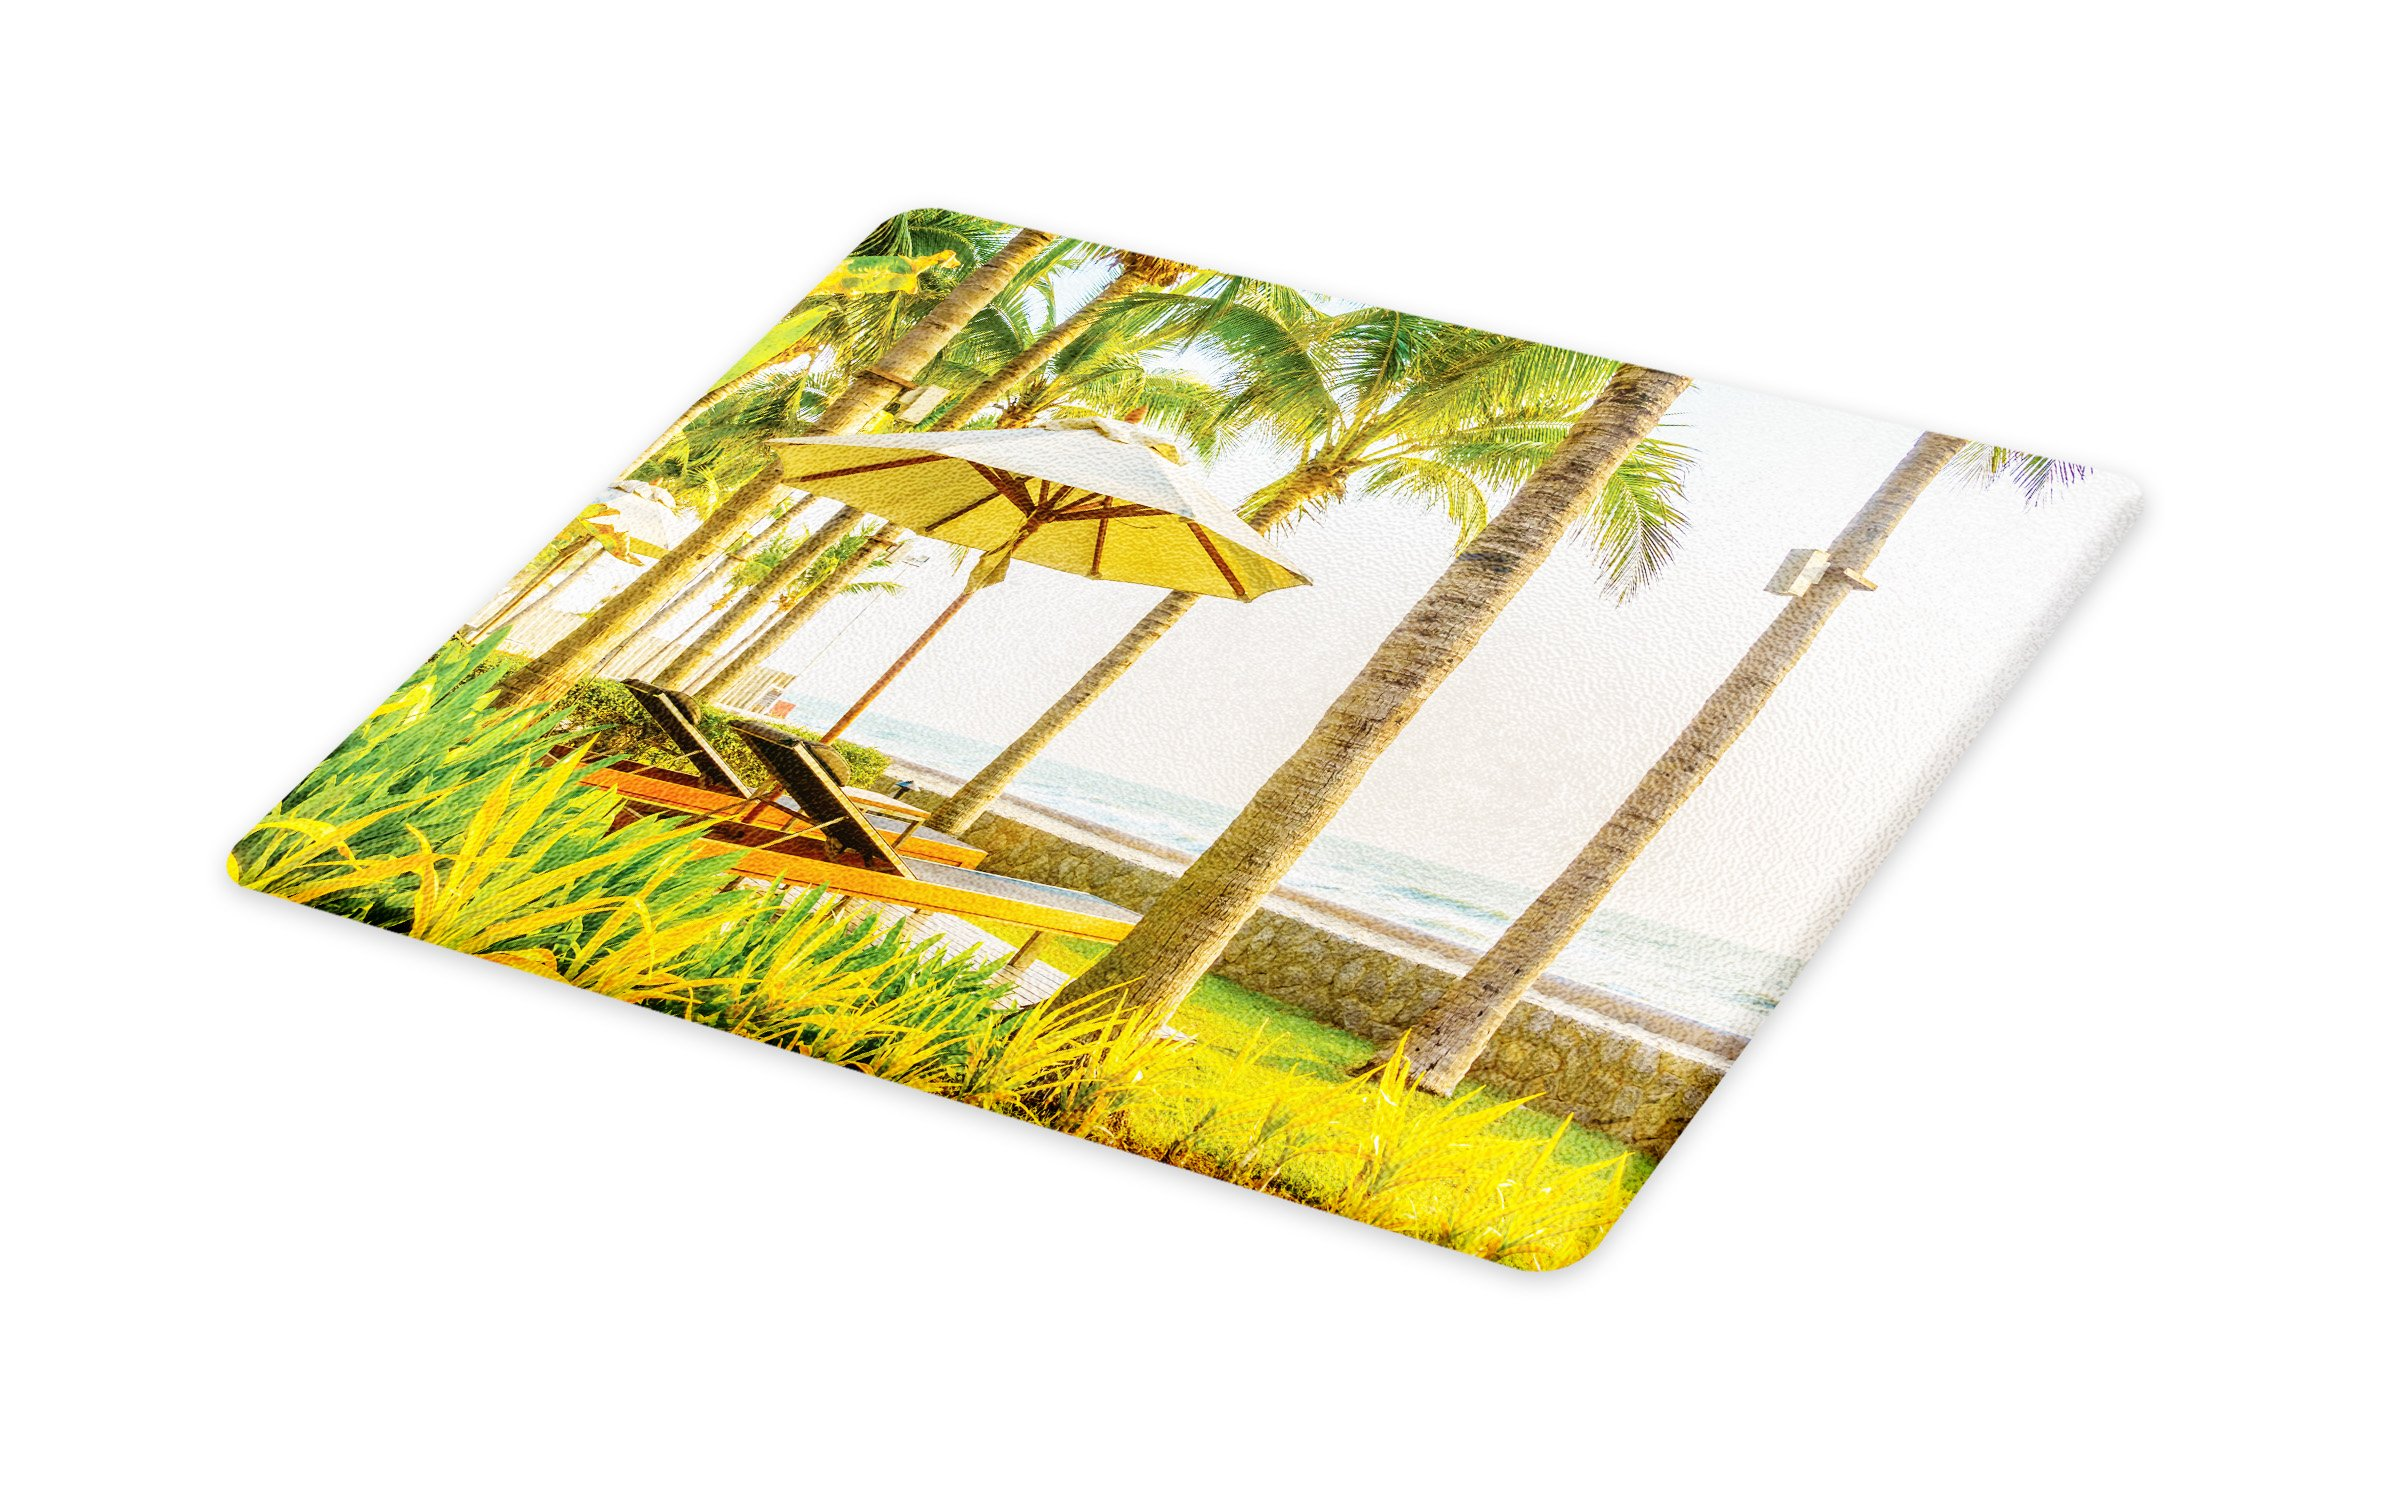 Lunarable Seaside Cutting Board, Palm Trees Umbrella and Chairs Around Swimming Pool in Hotel Resort Image, Decorative Tempered Glass Cutting and Serving Board, Small Size, Yellow Green and Tan